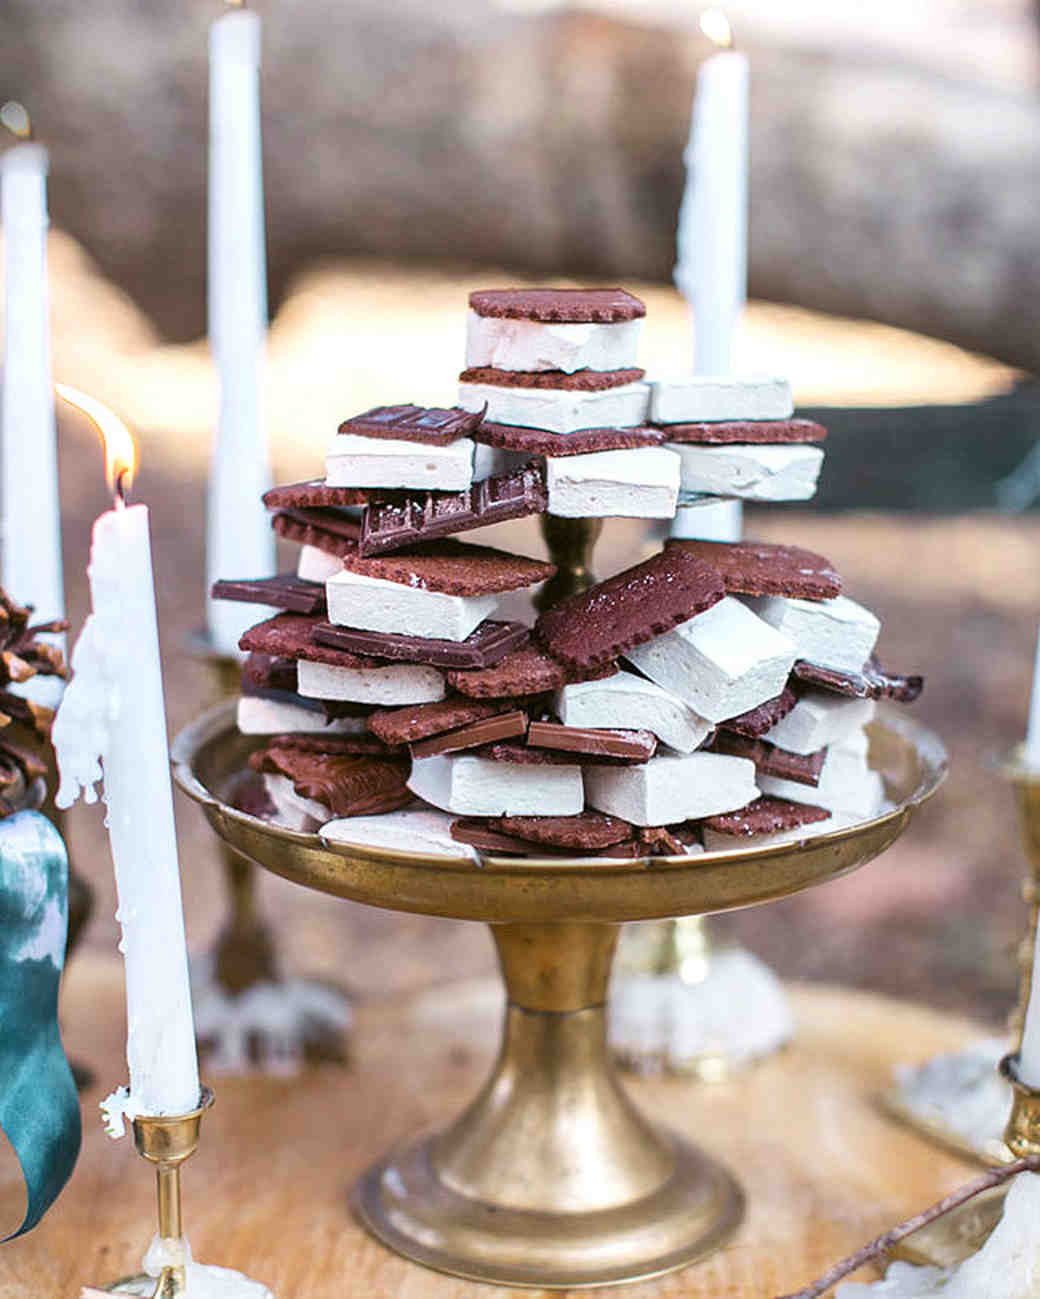 Cocktail Wedding Food Ideas: 25 Unexpected Wedding Food Ideas Your Guests Will Love